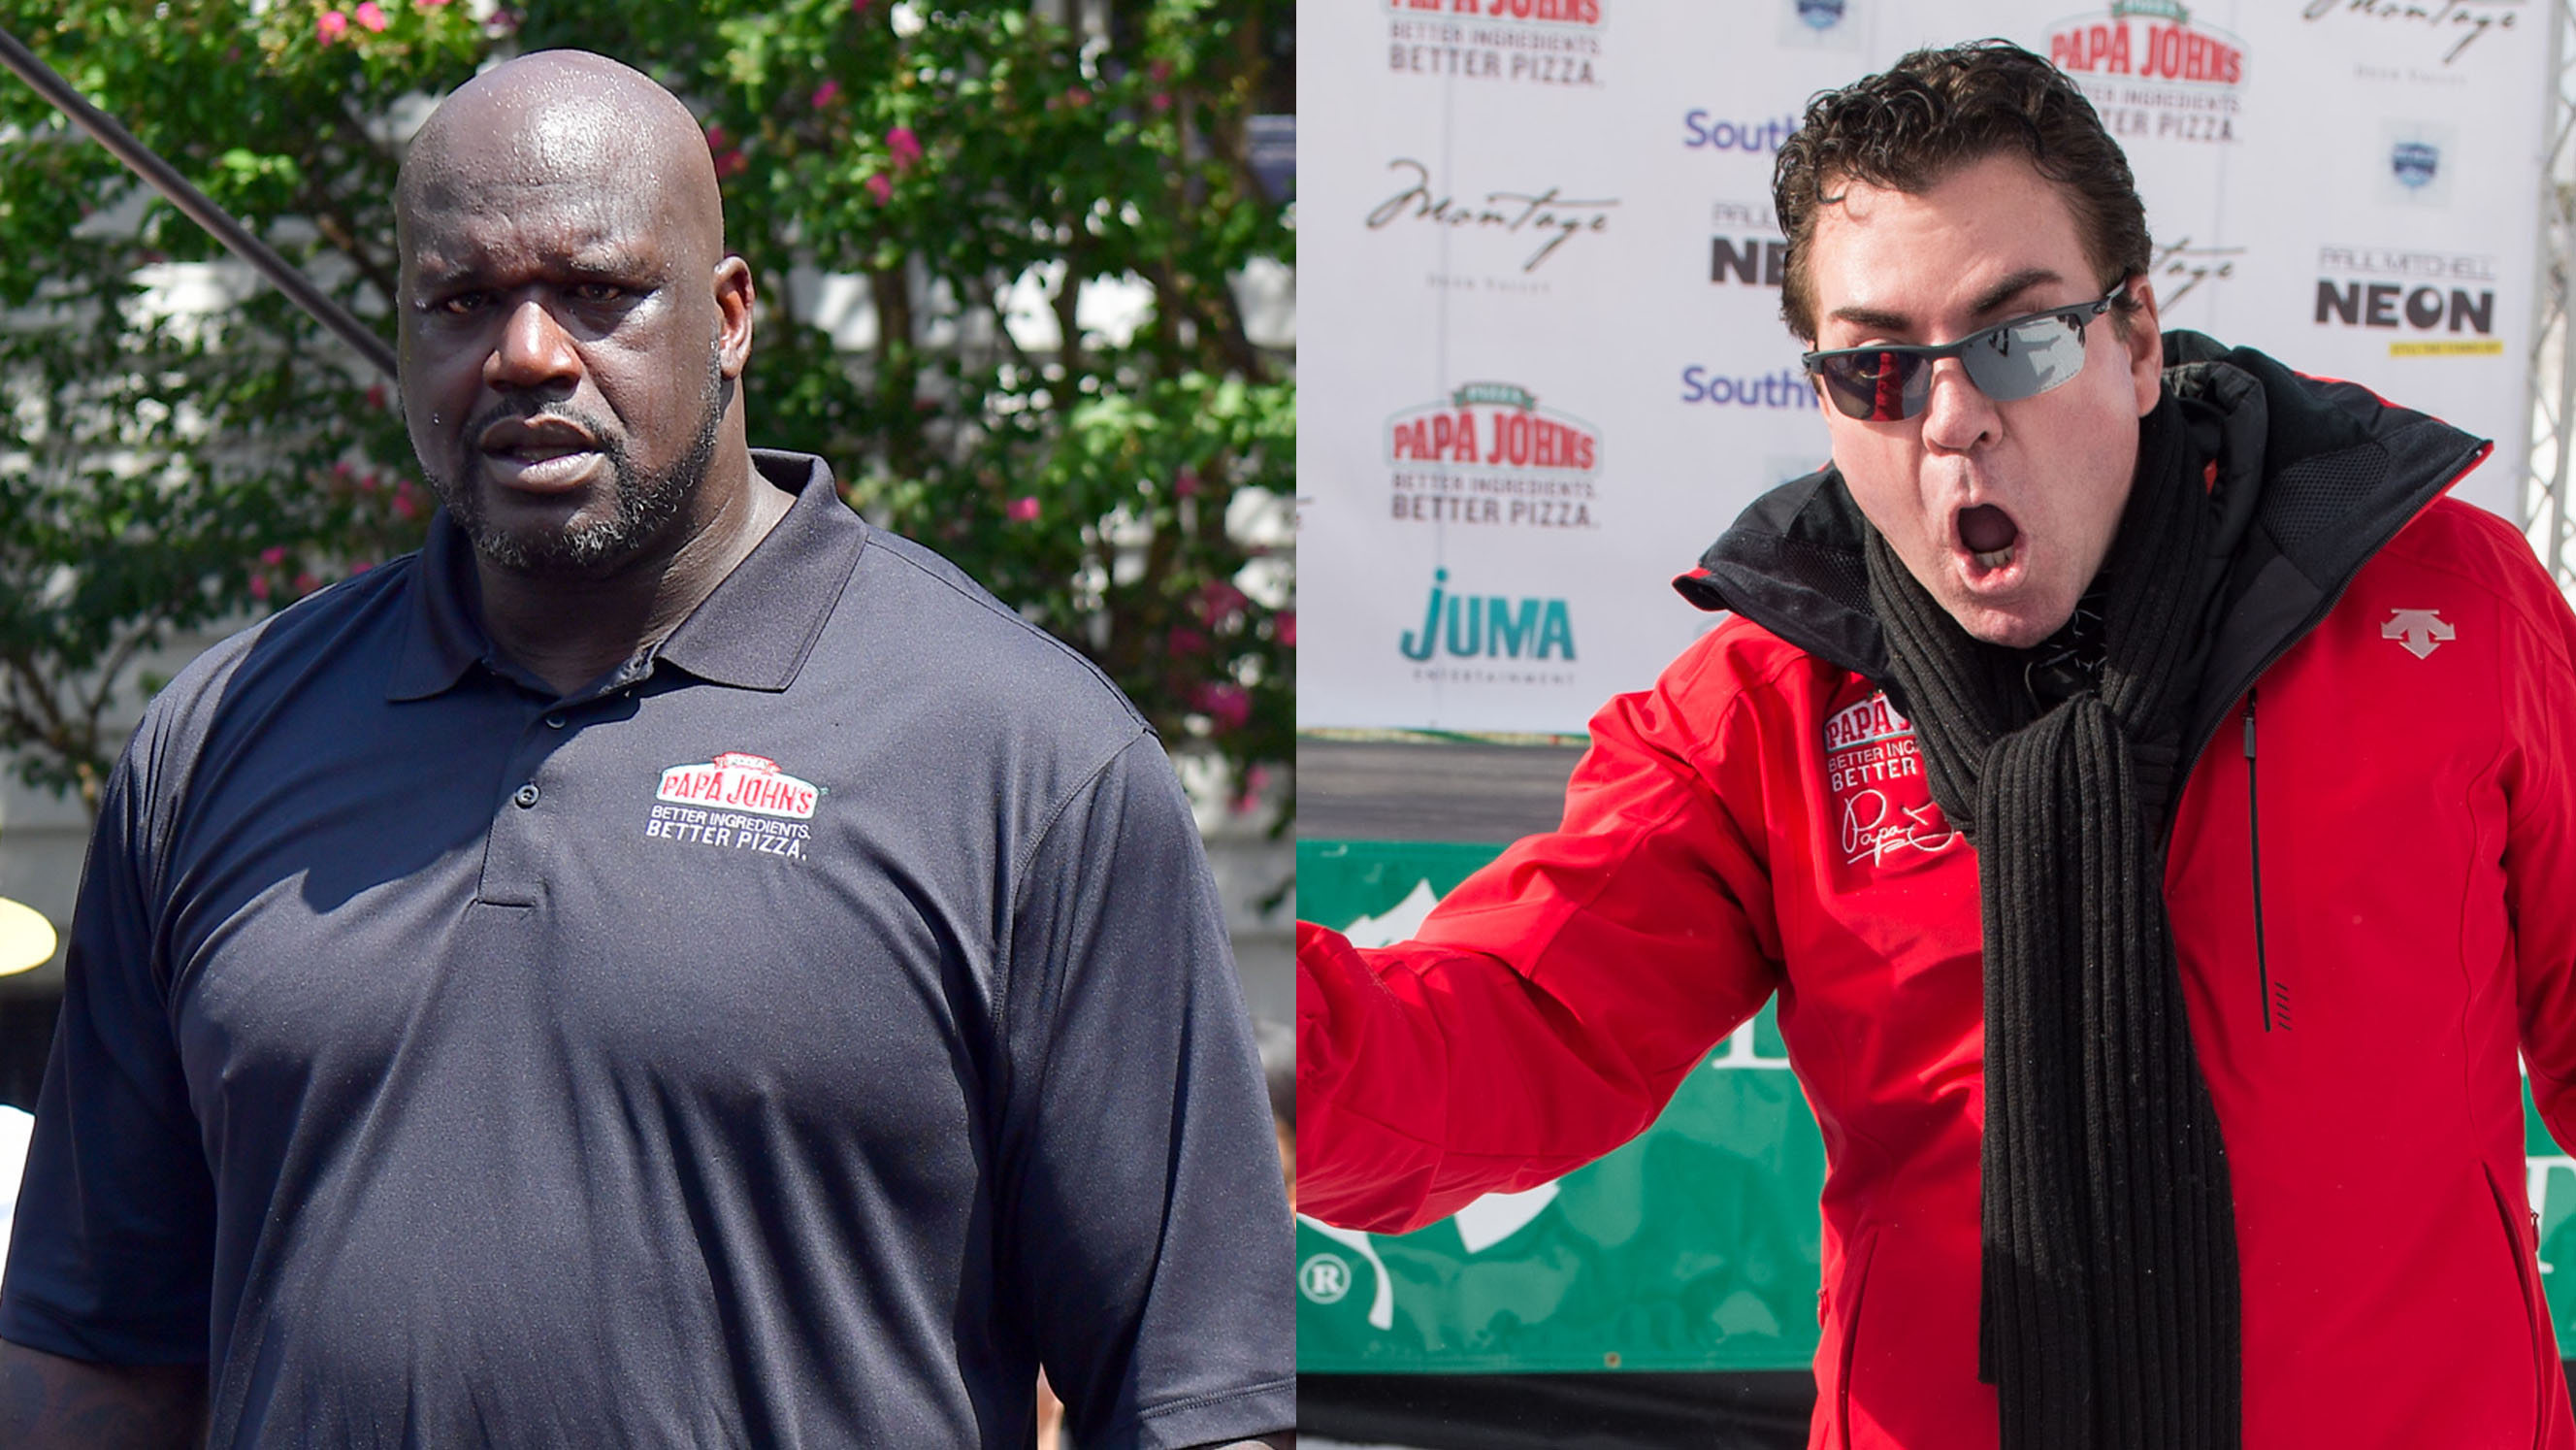 Former Papa John's CEO criticized by Shaq: 'Sometimes people don't know when to keep their mouths shut'